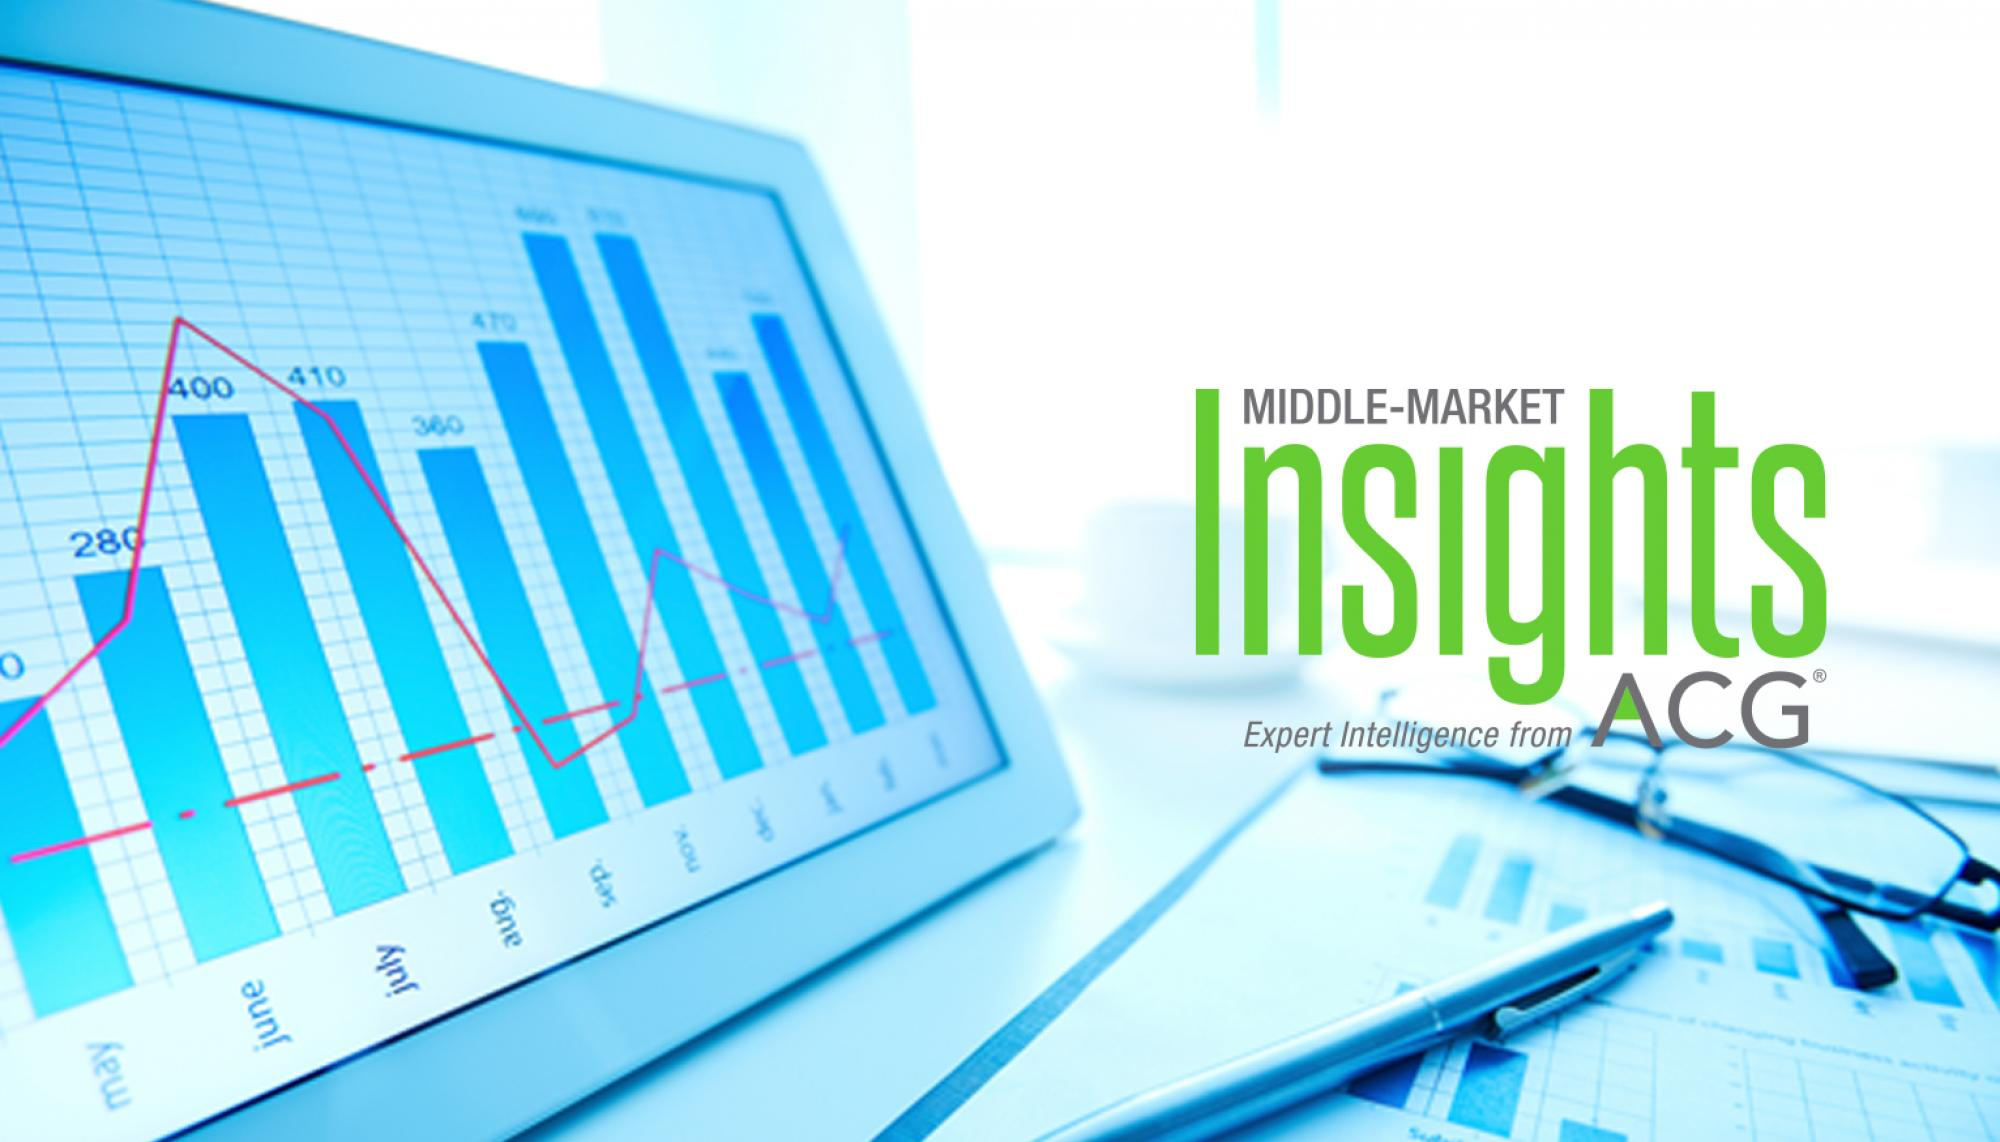 Computer with a graph. Middle Market Insight brought to you by ACG